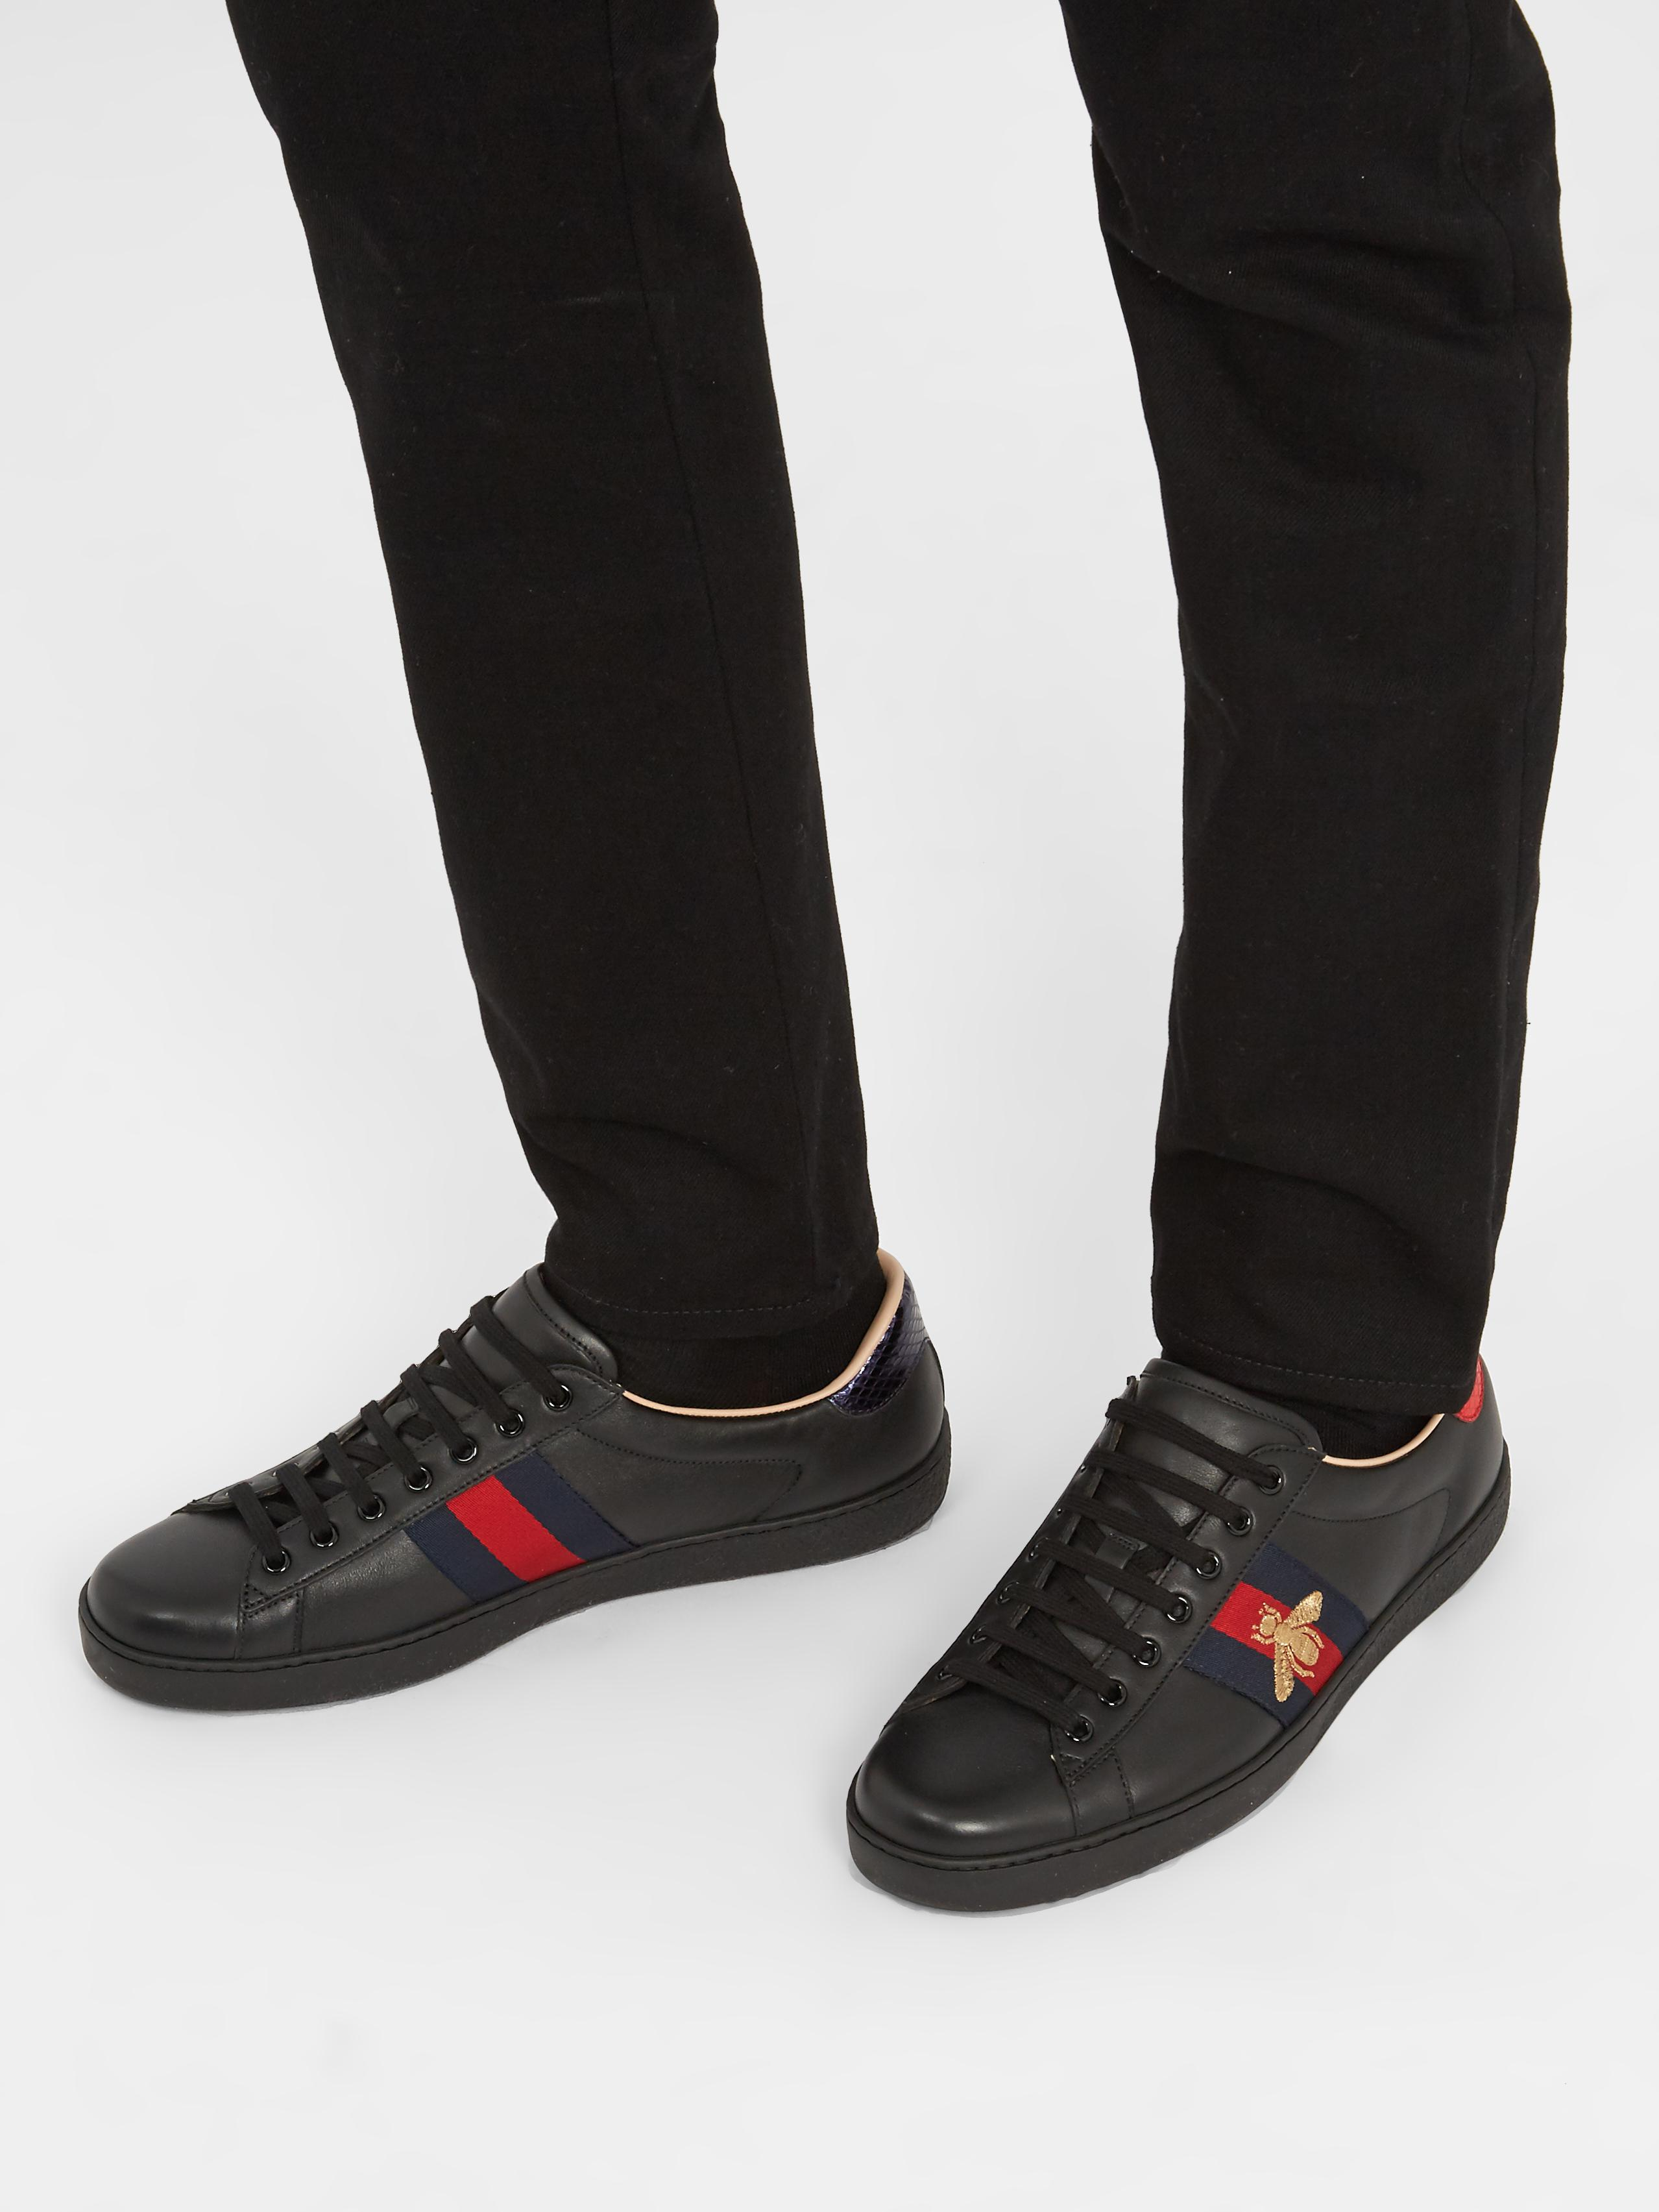 Gucci Leather Ace Bee Sneakers in Black